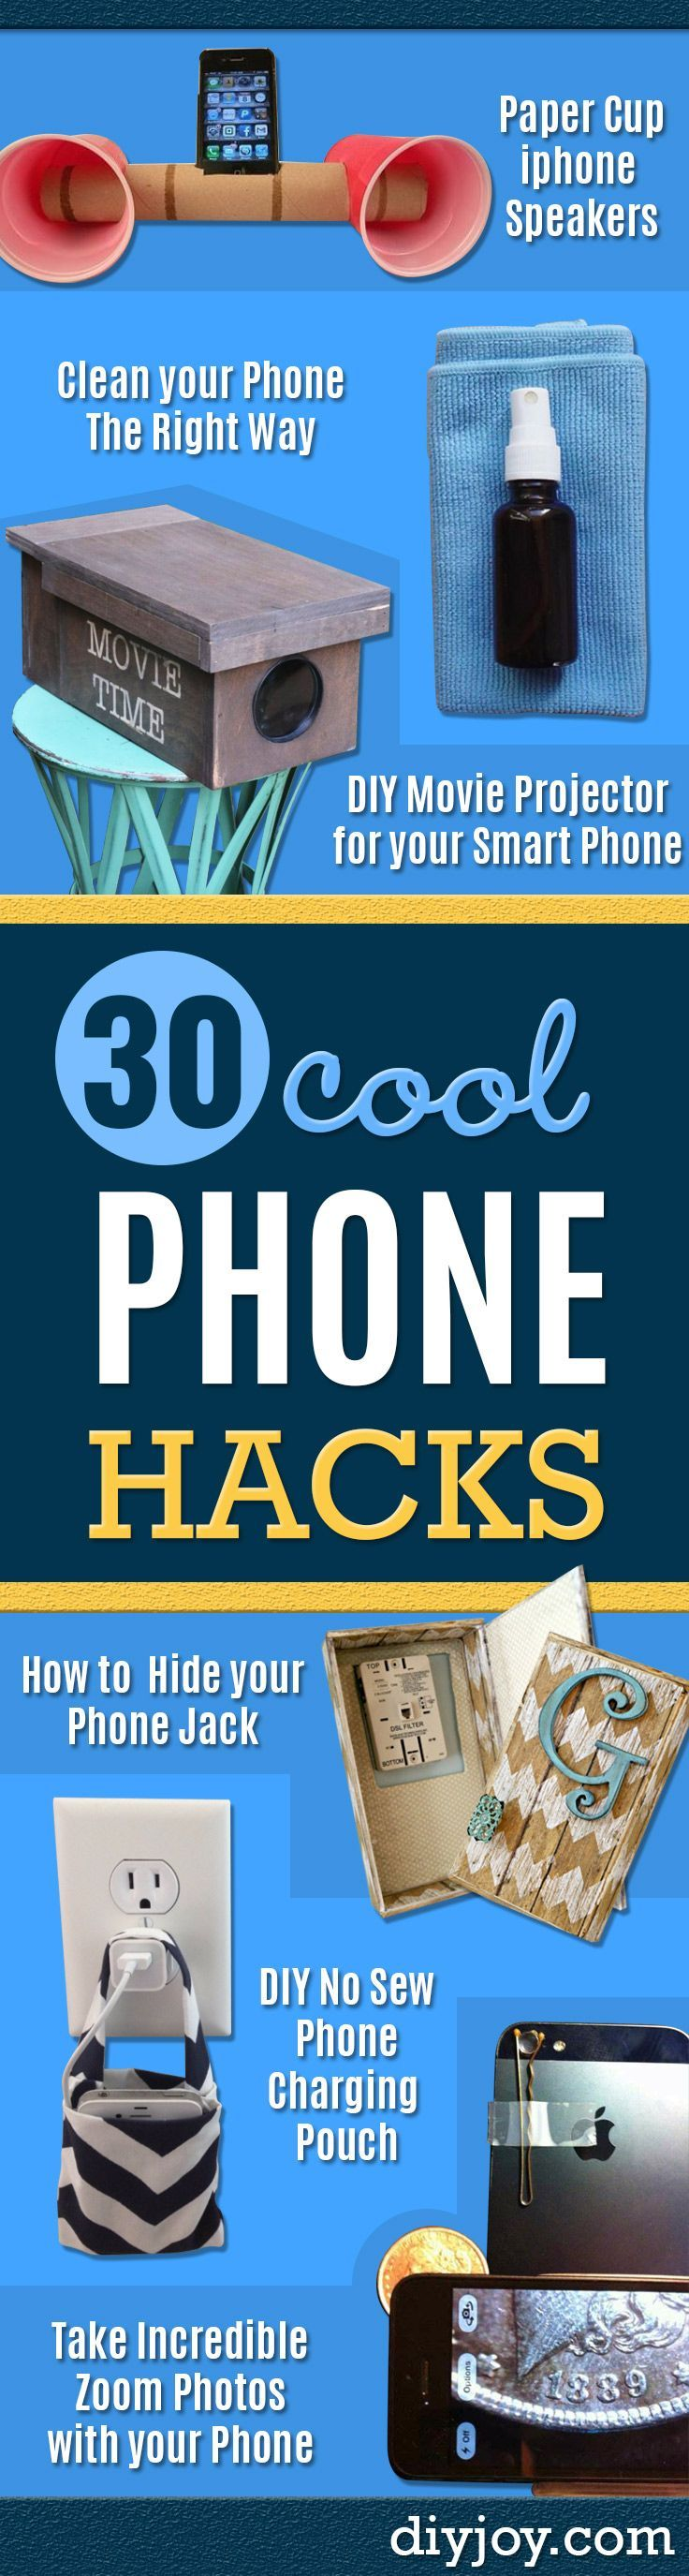 DIY Phone Hacks - Cool Tips and Tricks for Phones, Headphones and iPhone How To - Make Speakers, Change Settings, Know Secrets You Can Do With Your Phone By Learning This Cool Stuff - DIY Projects and Crafts for Men and Women http://diyjoy.com/diy-iphone-hacks